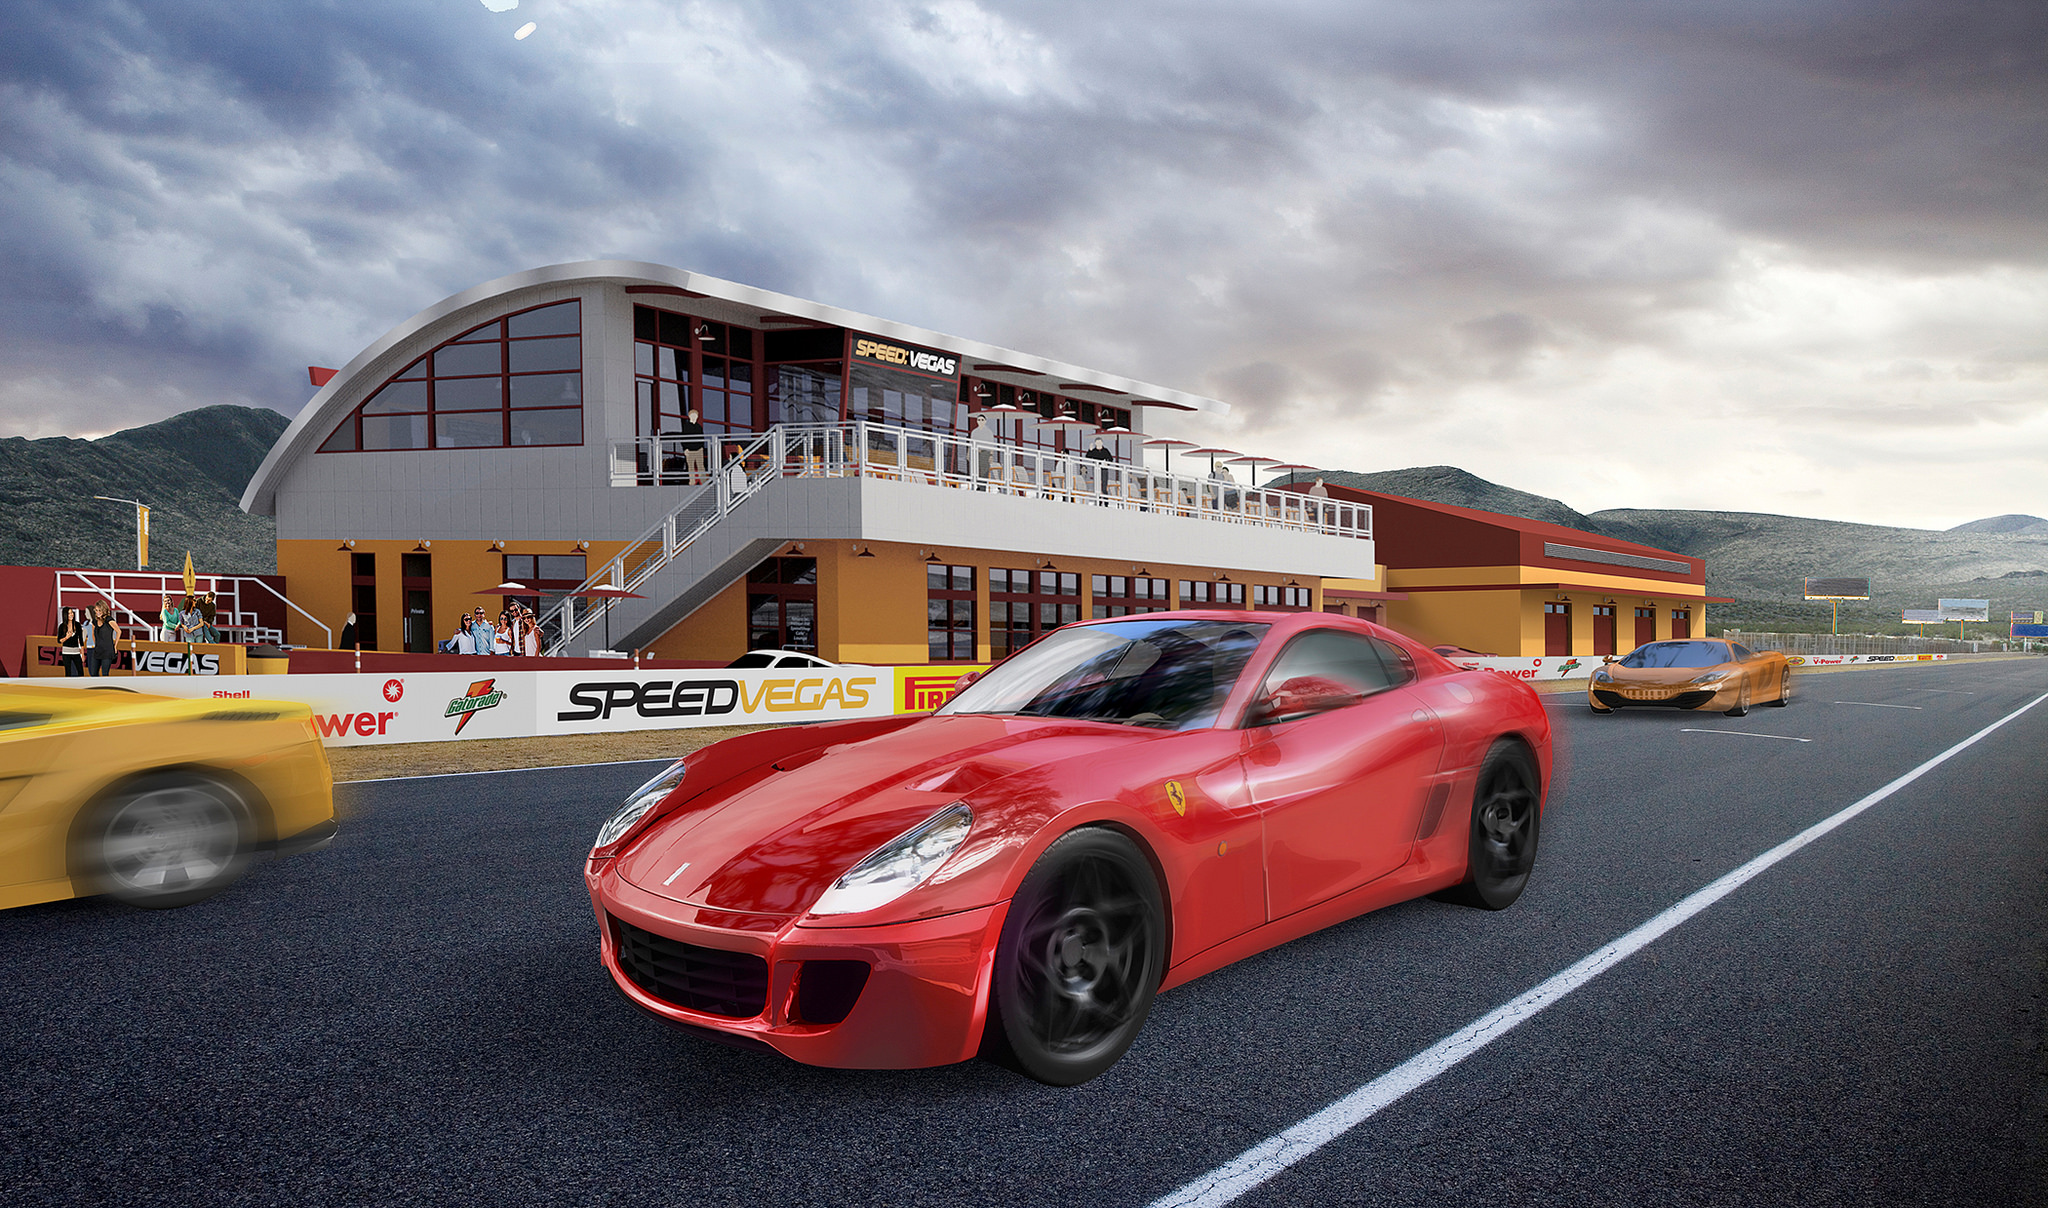 SPEEDVEGAS is a $30 million, 100-acre motorsports complex featuring Las Vegas' longest exotic car track. Photo courtesy of SPEEDVEGAS.